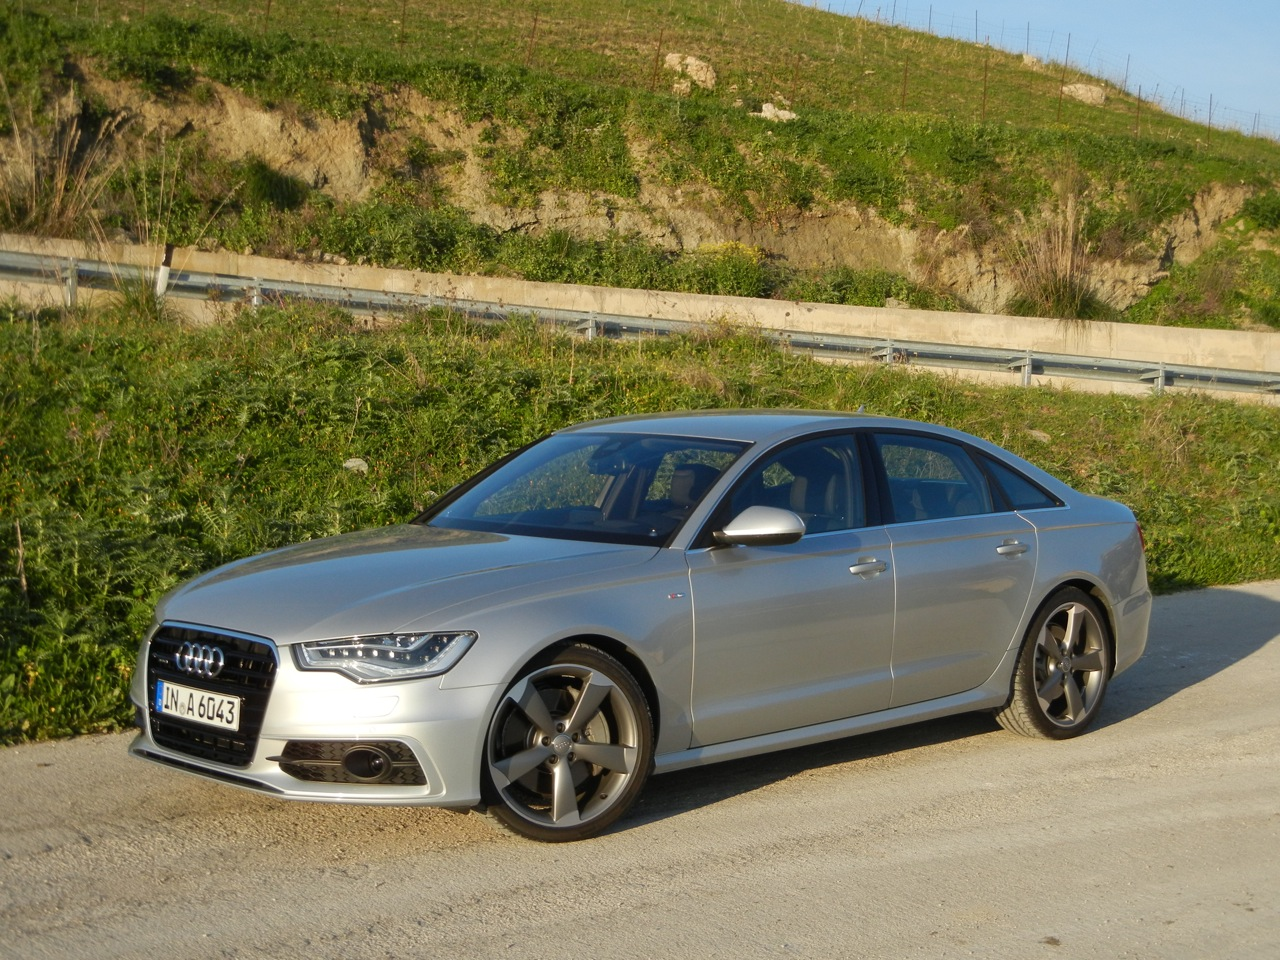 2012 audi a6 new cars car reviews prices used cars for sale autos weblog. Black Bedroom Furniture Sets. Home Design Ideas